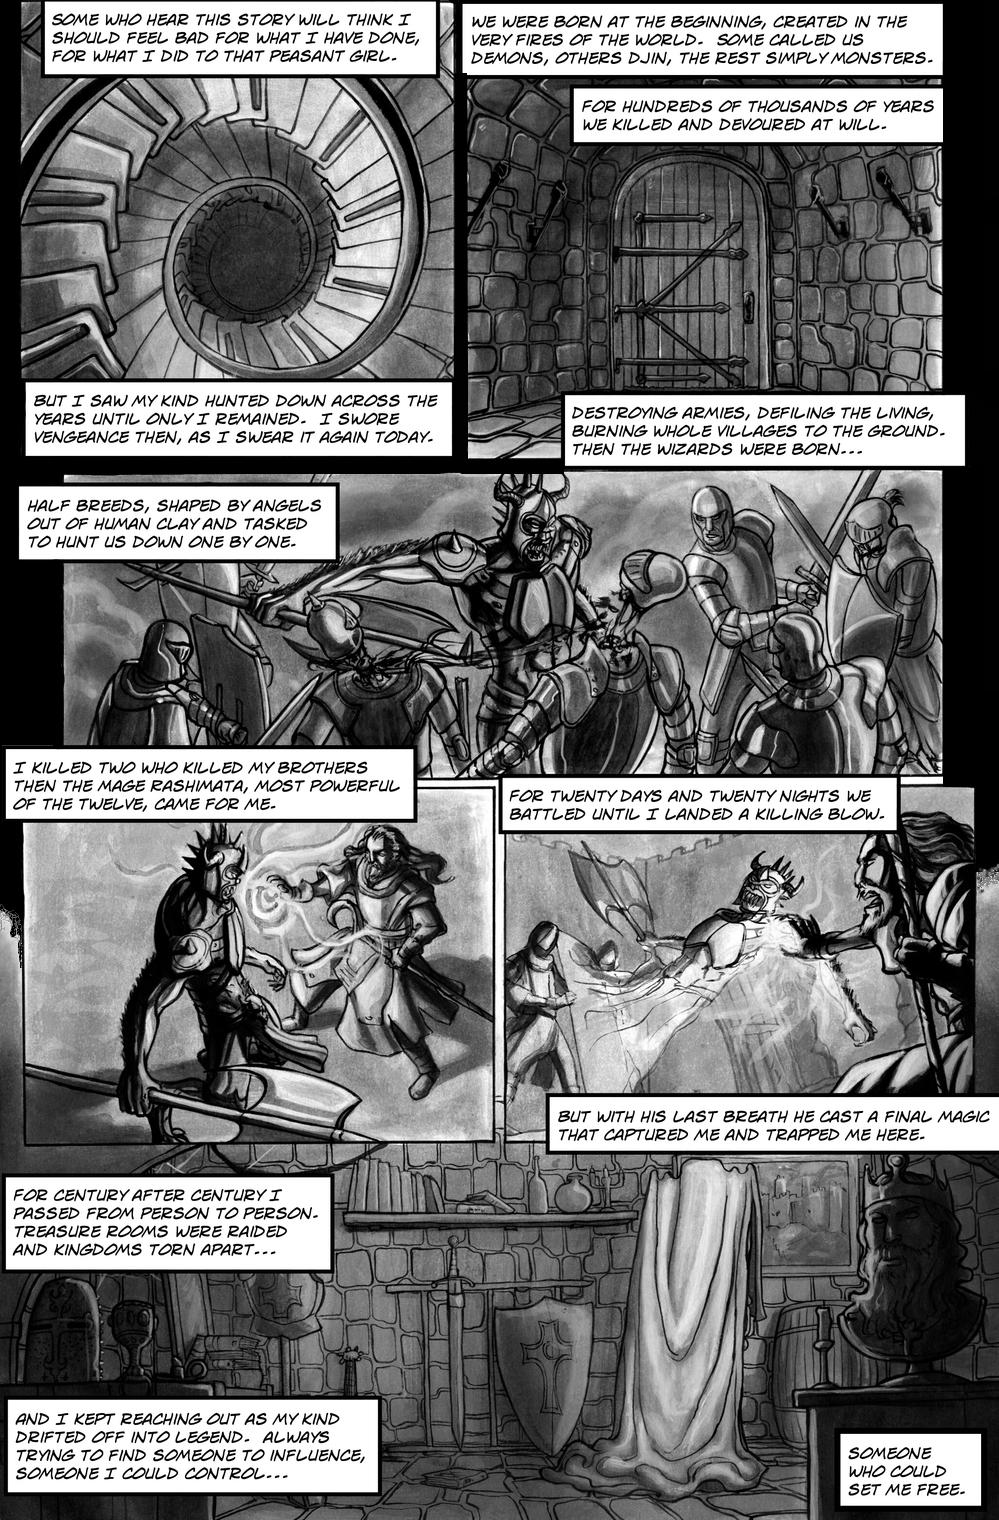 FAIREST page 1 - story 13 in The Book of Lies